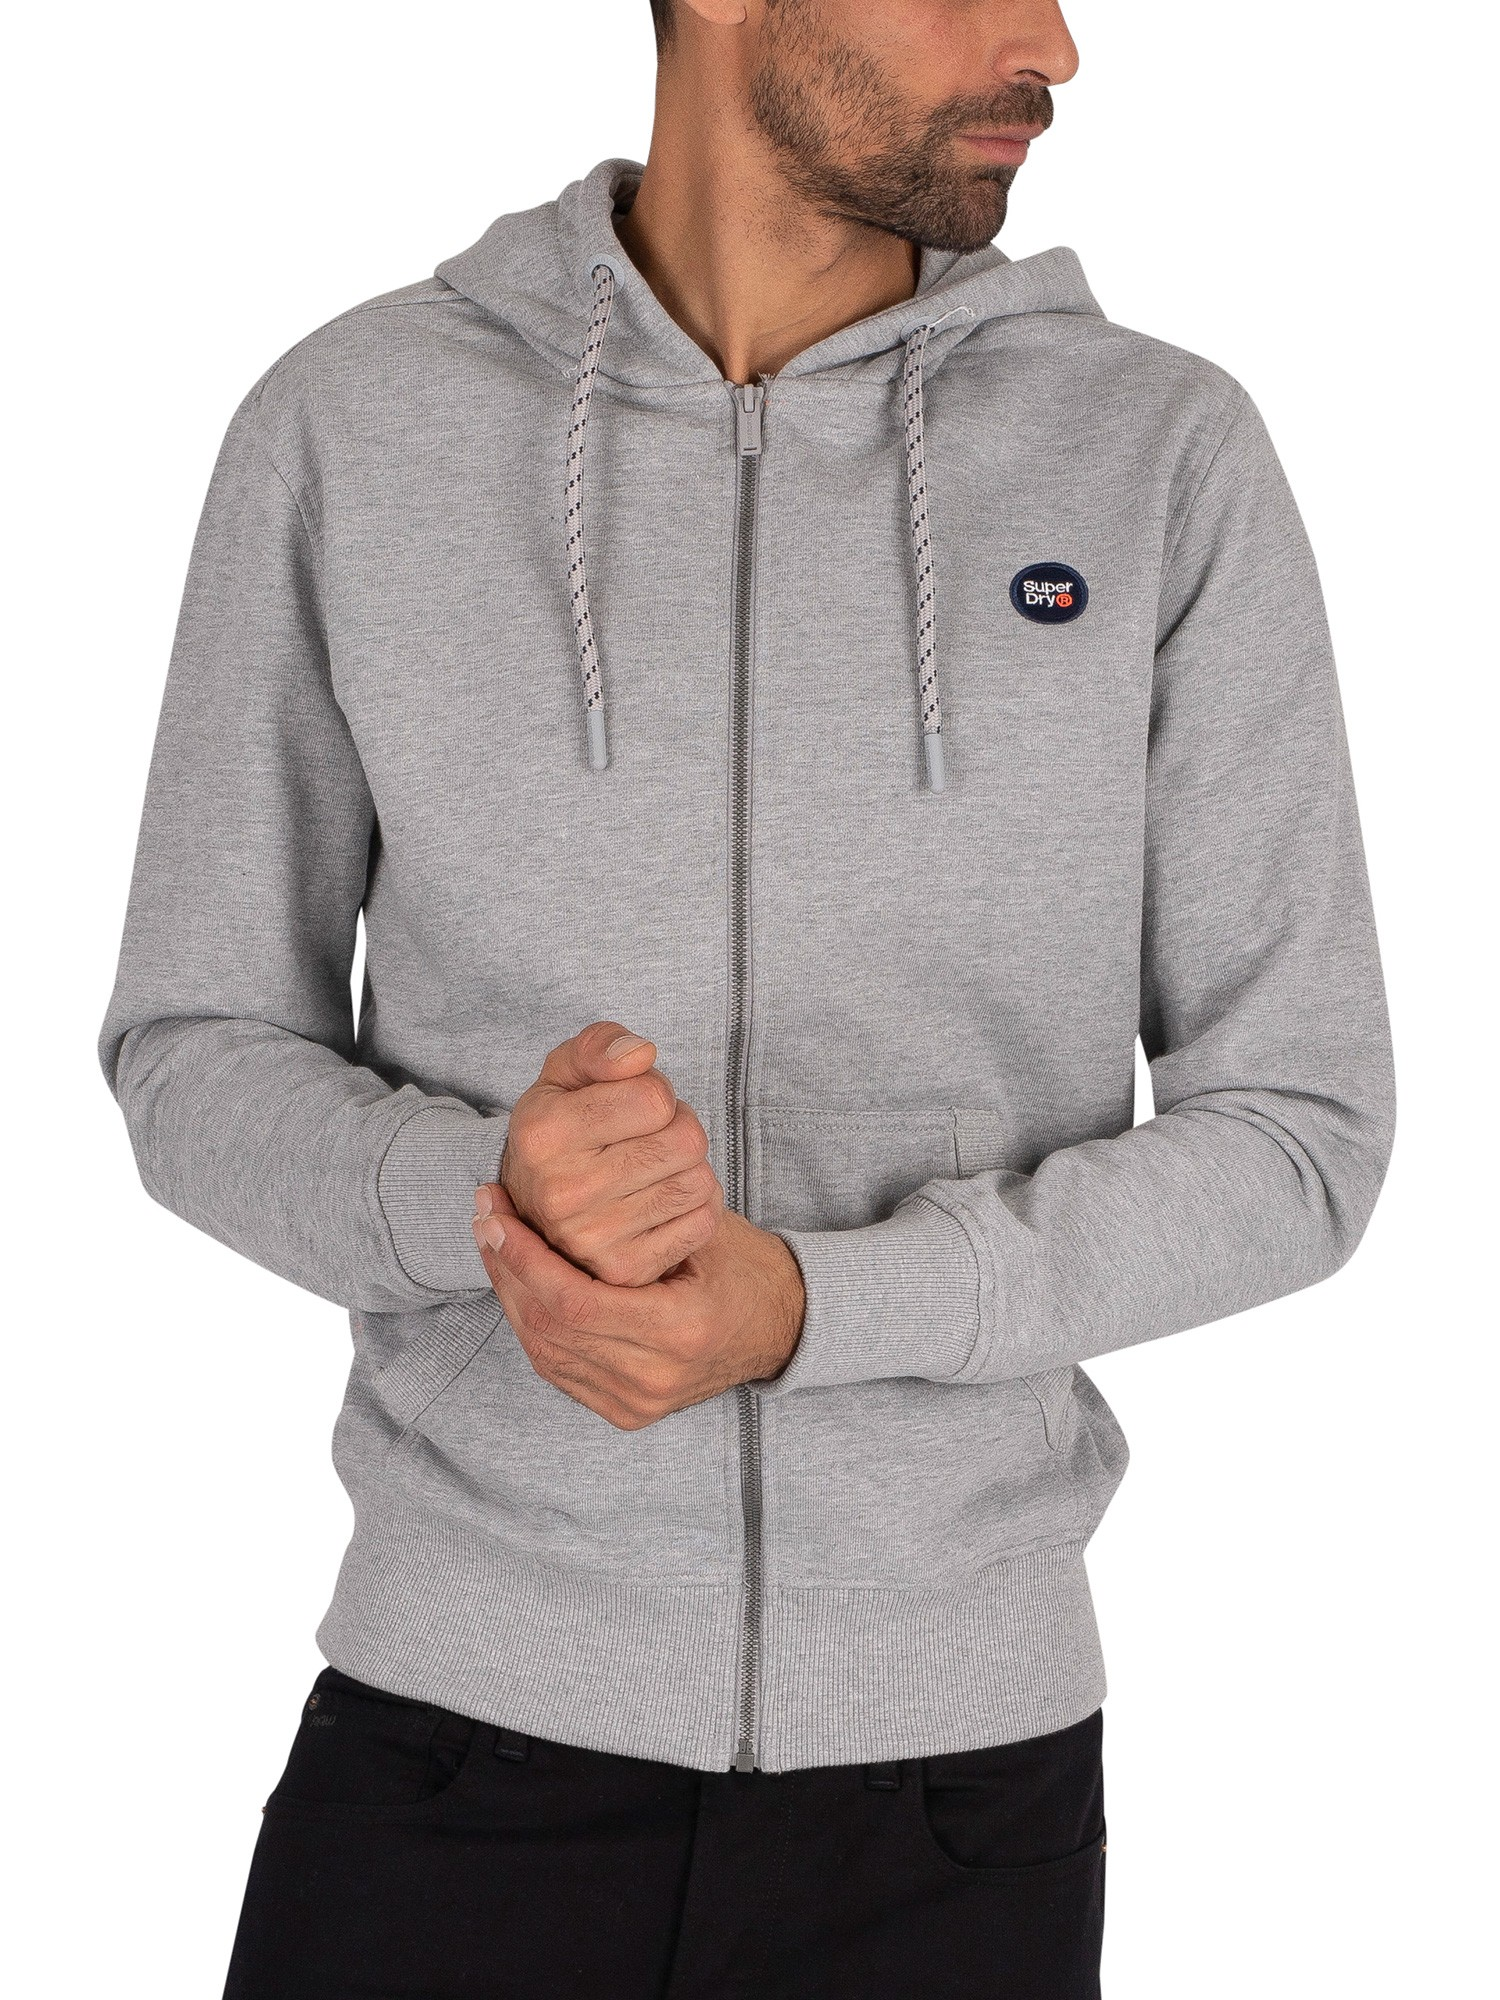 Superdry Collective Zip Hoodie - Grey Marl